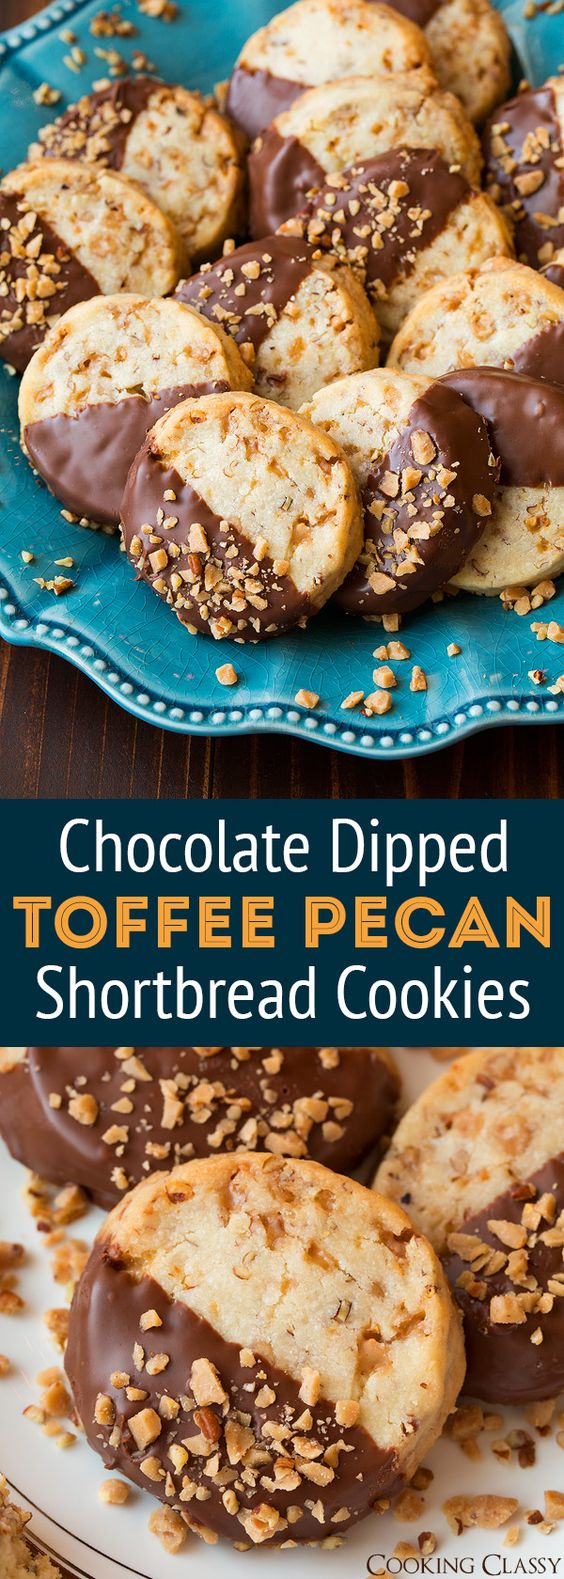 Chocolate Dipped Toffee Pecan Shortbread Cookies